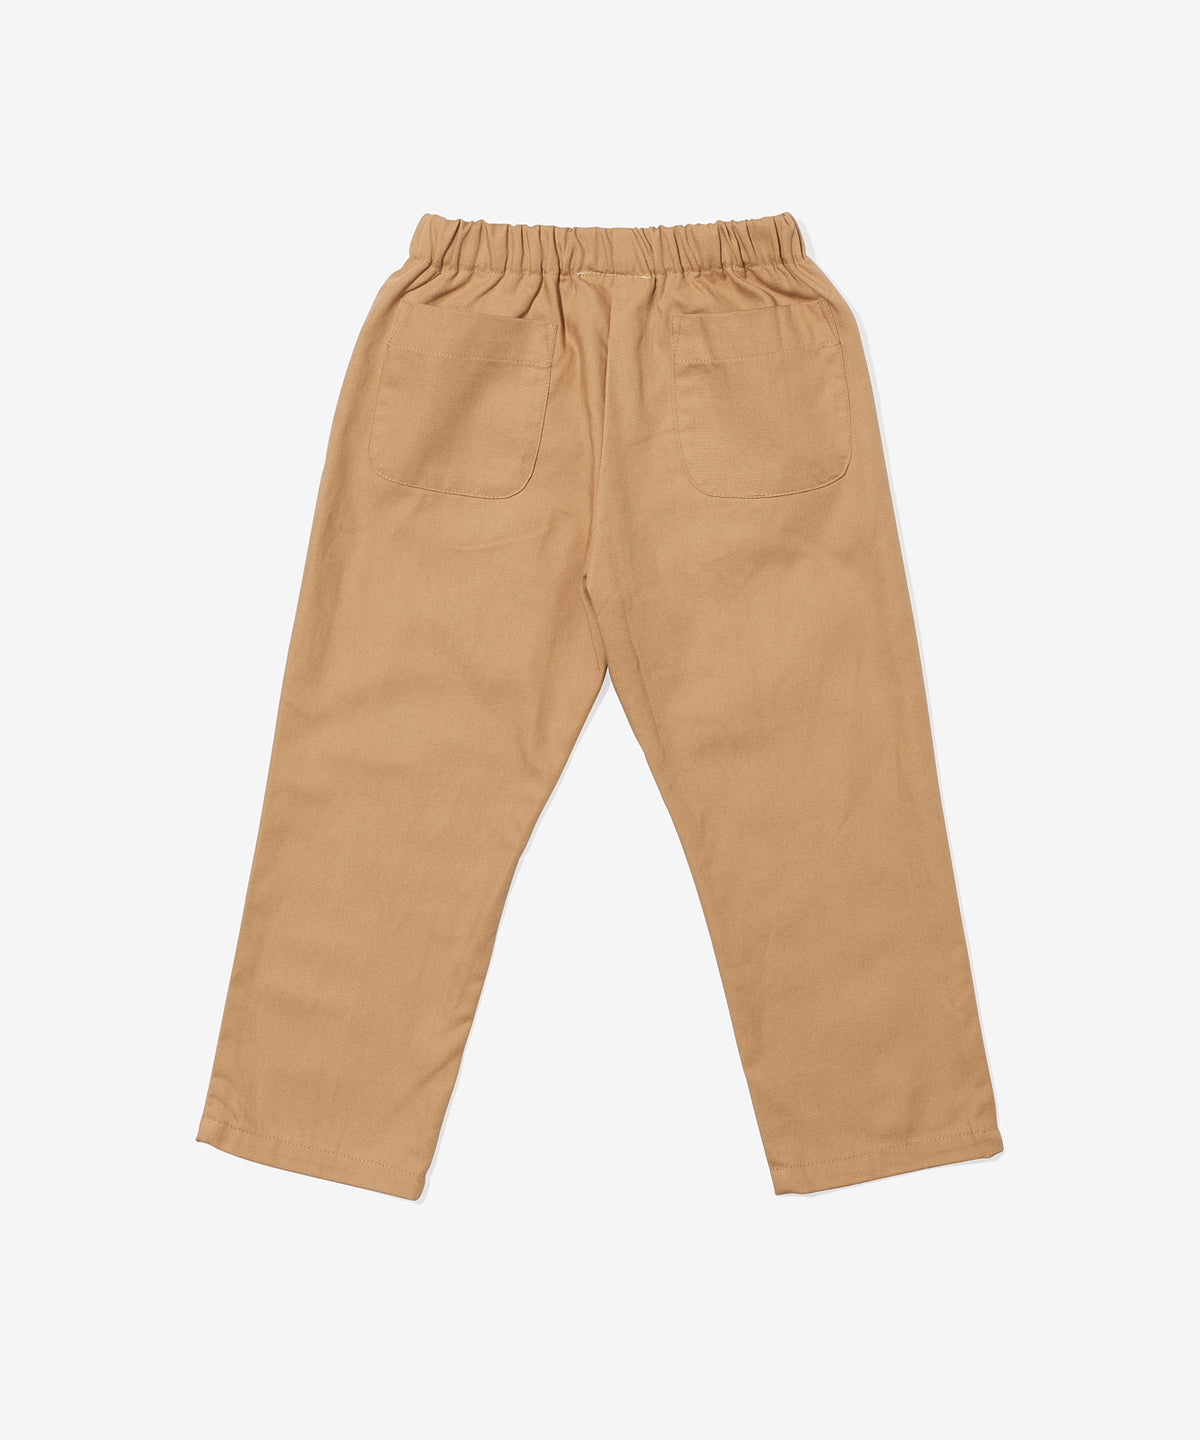 Flex Pant, Tan Oxford